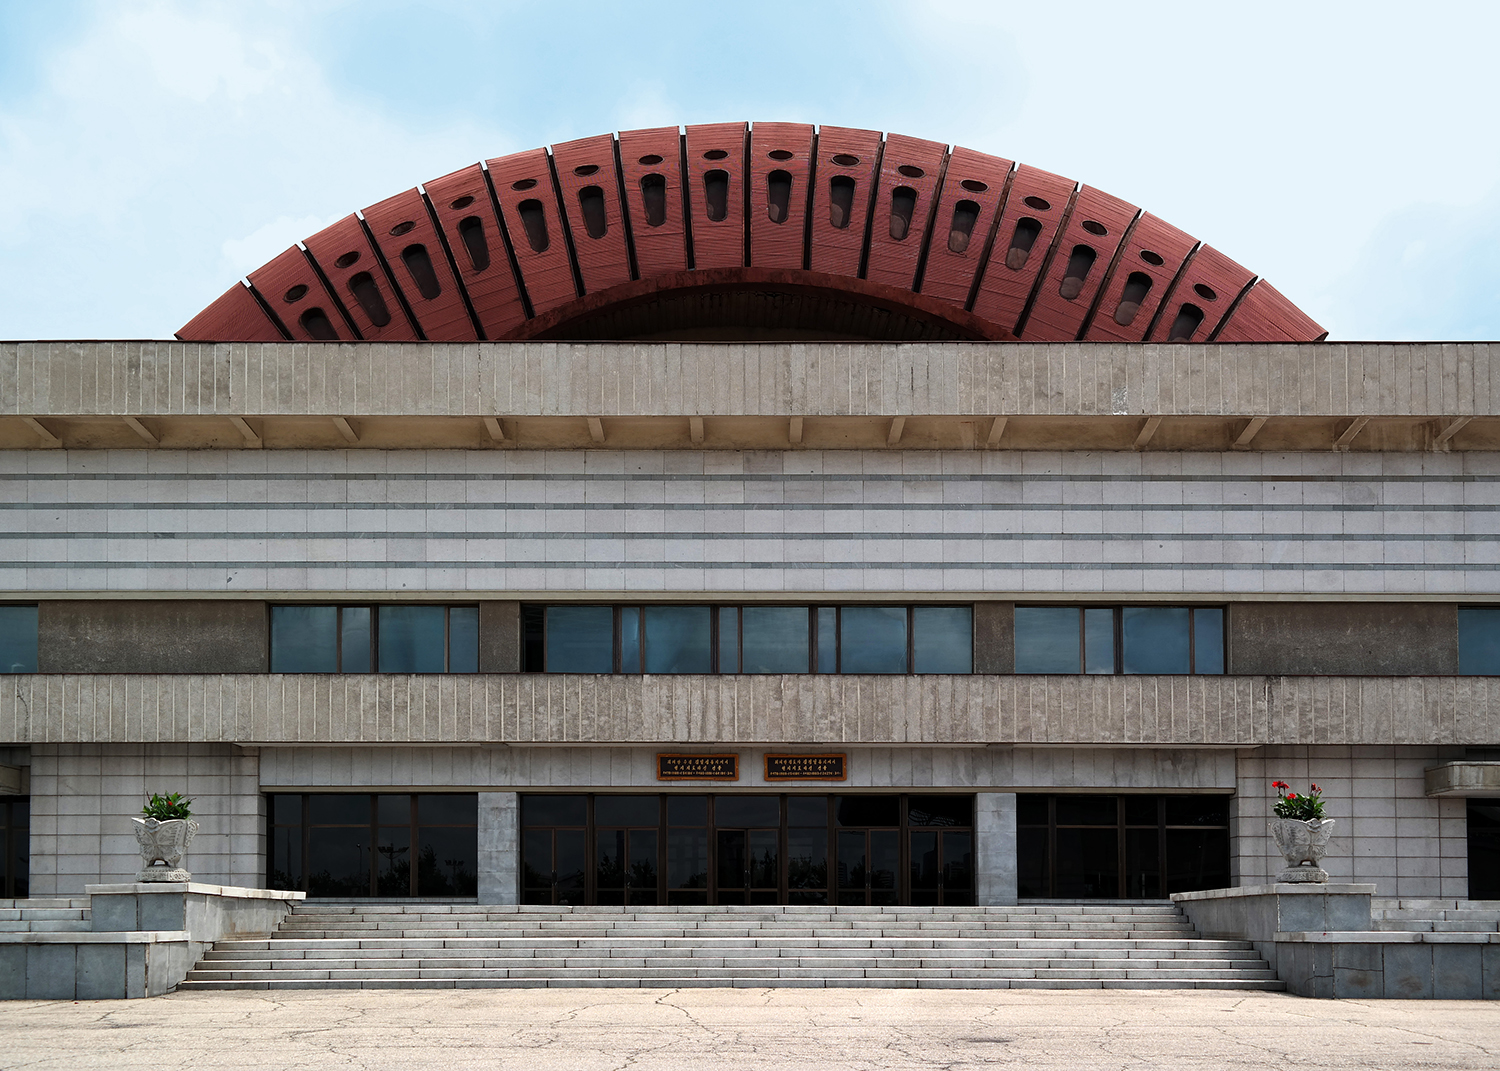 North Korea's Central Youth Hall, constructed in 1989